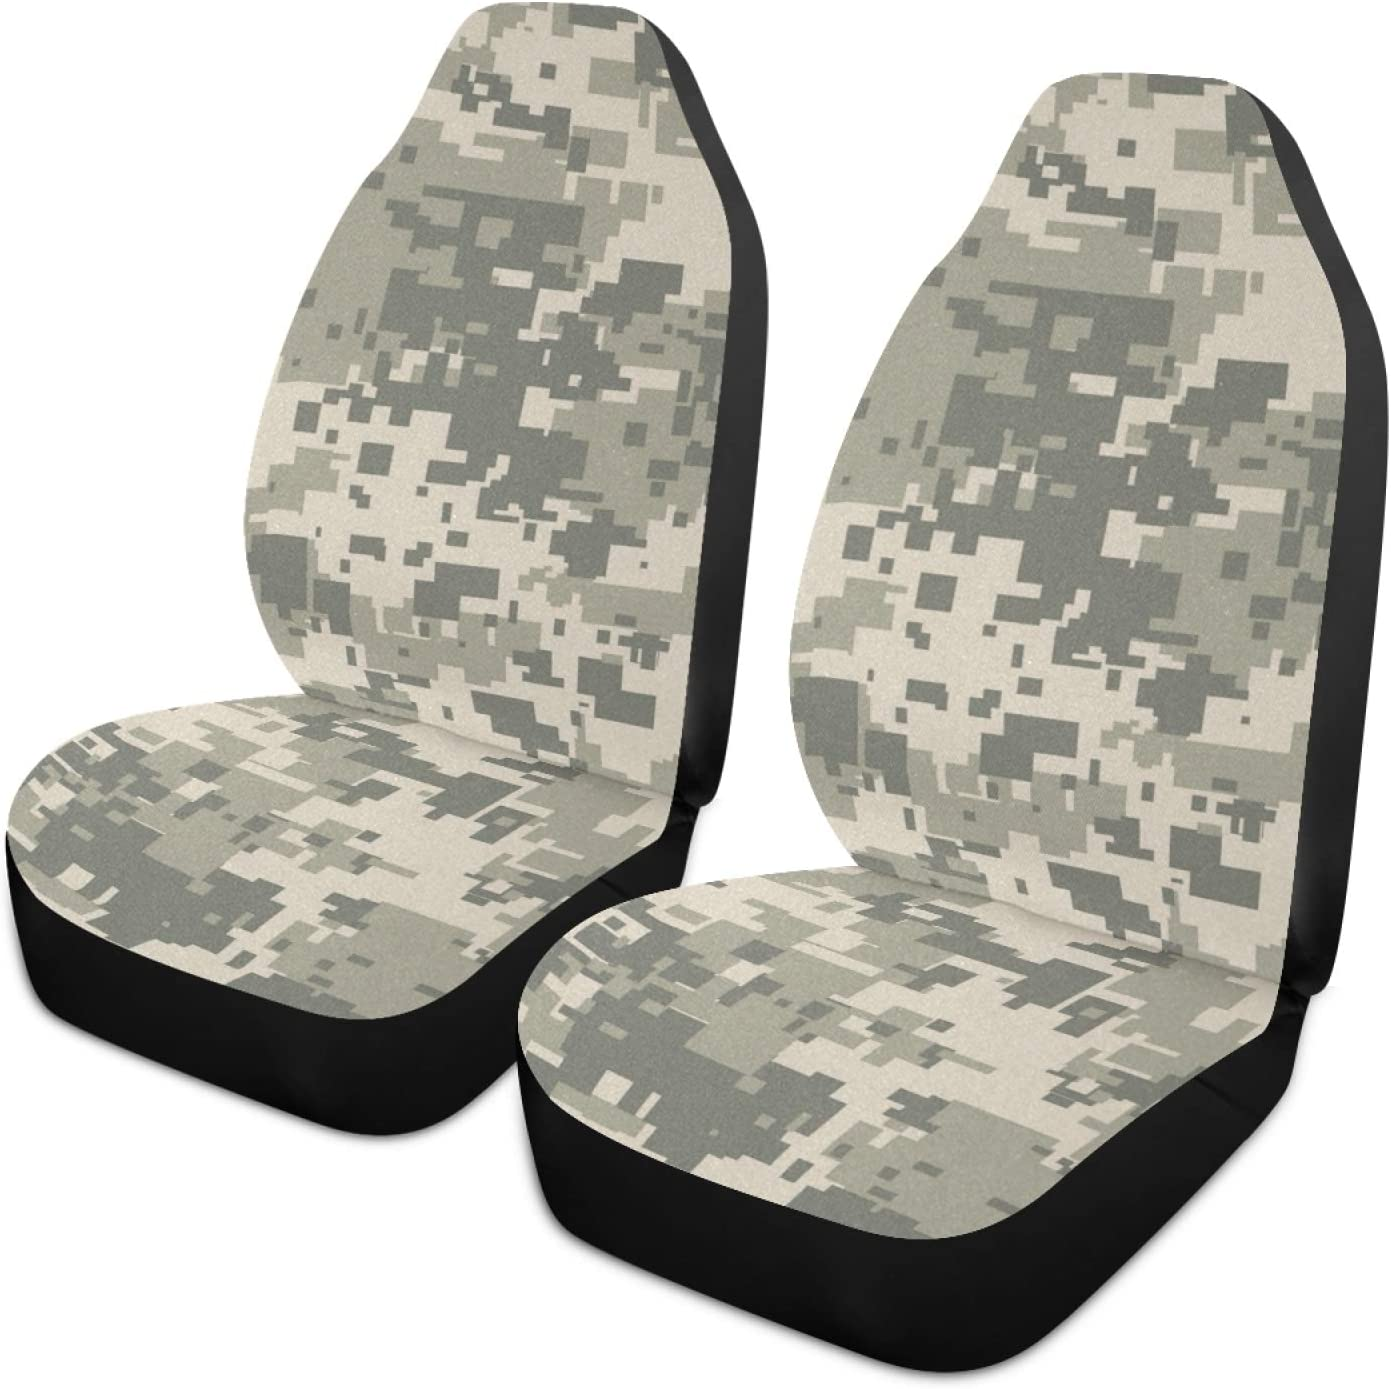 Moudou Camouflage Car Seat Cover Breathable Front Car Seat Cover Vehicle Seat Protector Fit Most Cars, SUV, Truck and Van, 1pc